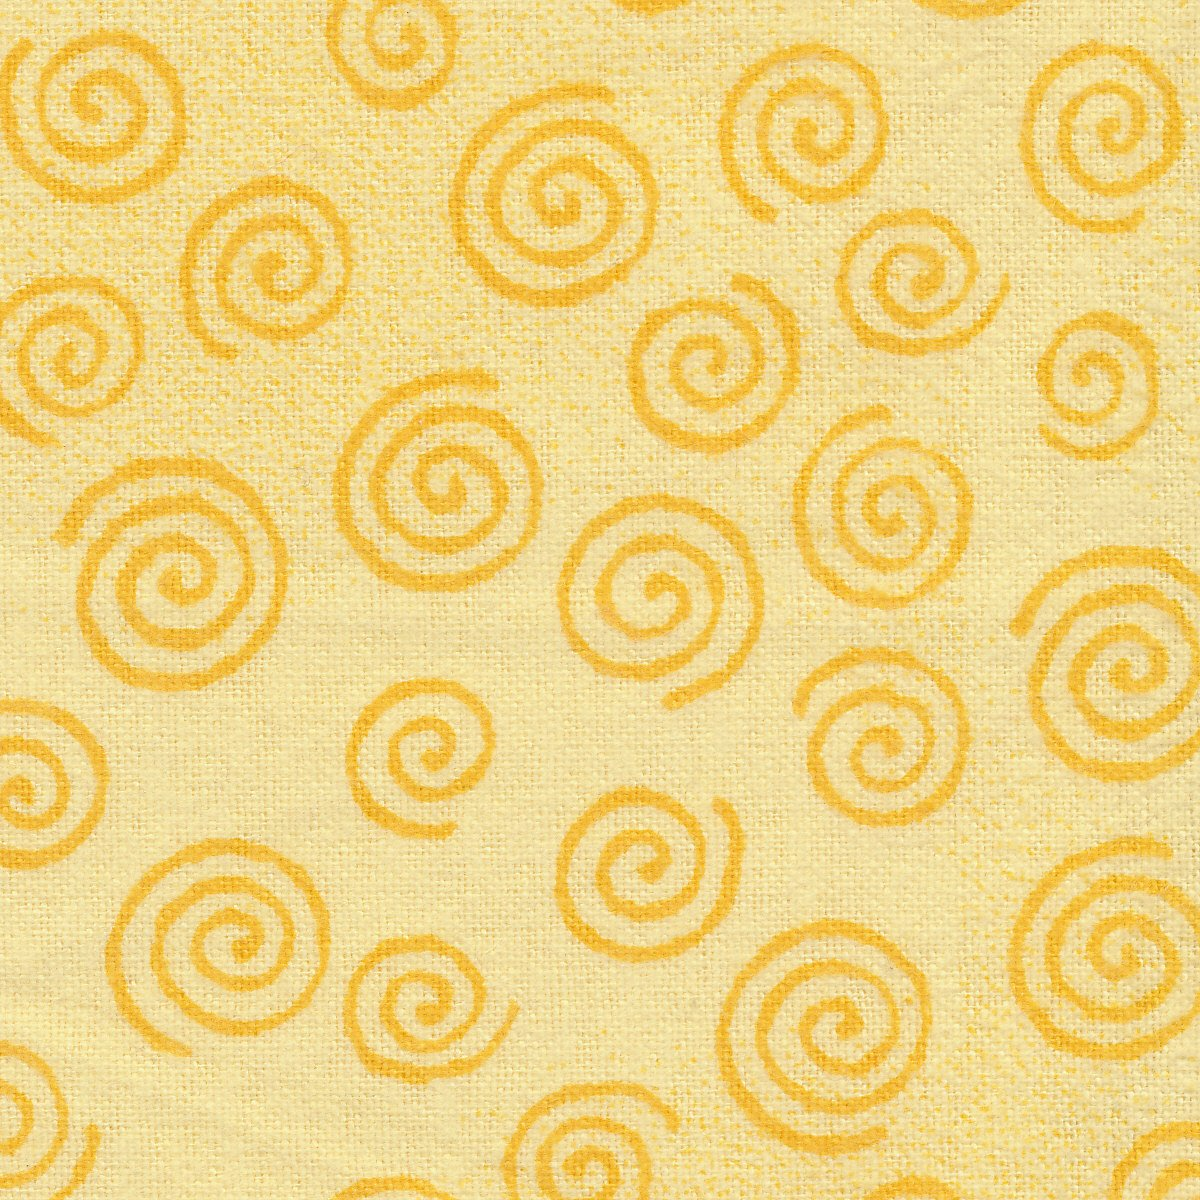 Quilt Backing Flannel - 110 Wide - 9028-1